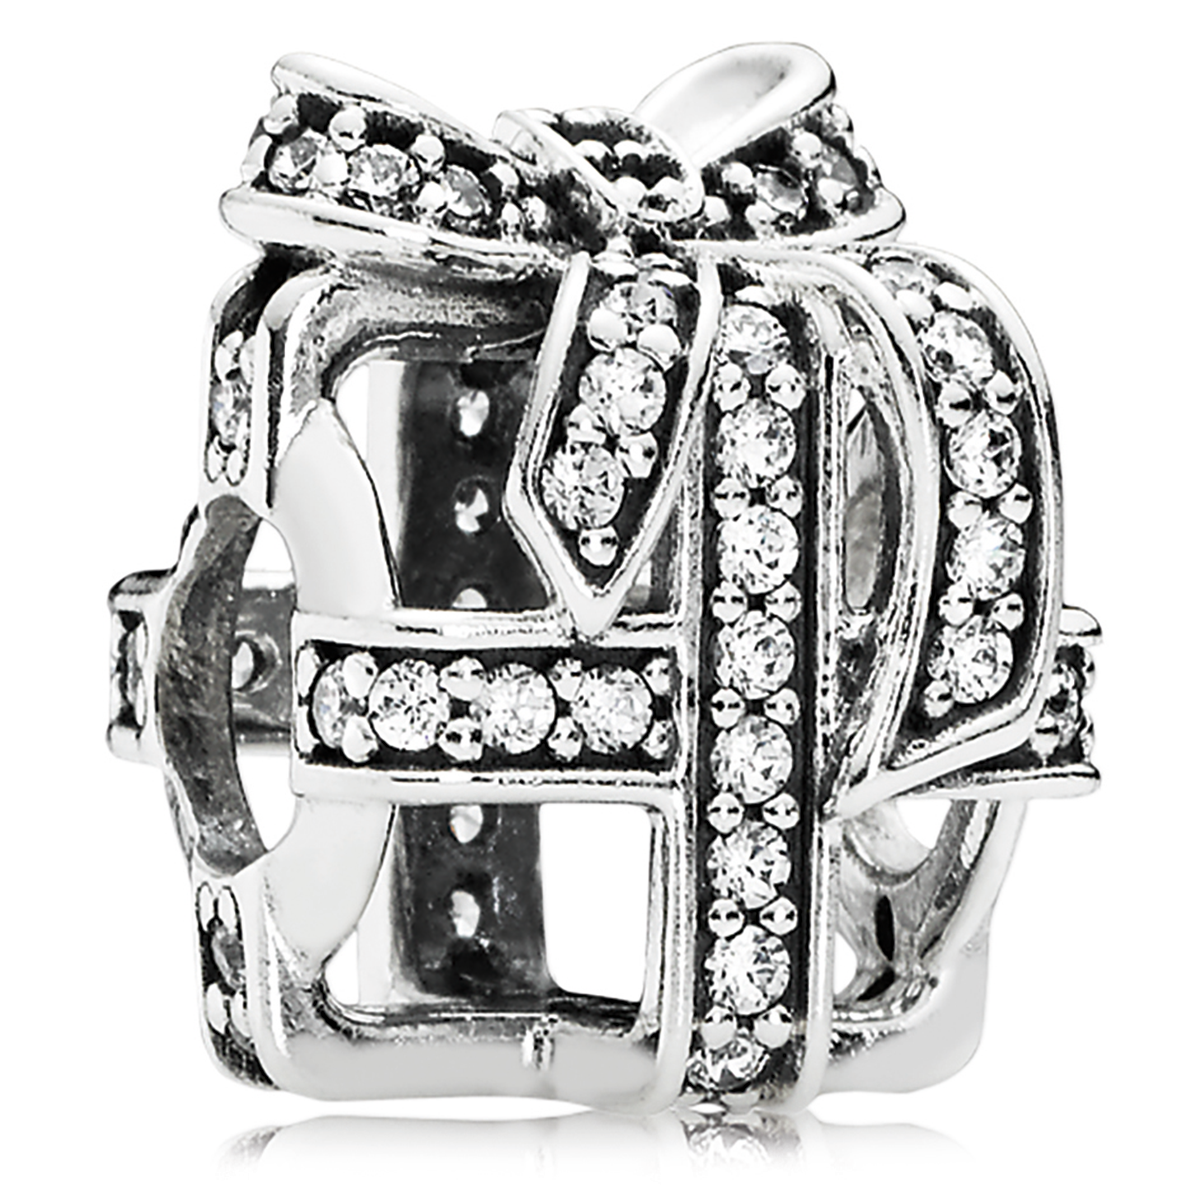 802-3131-PANDORA All Wrapped Up with Clear CZ Charm